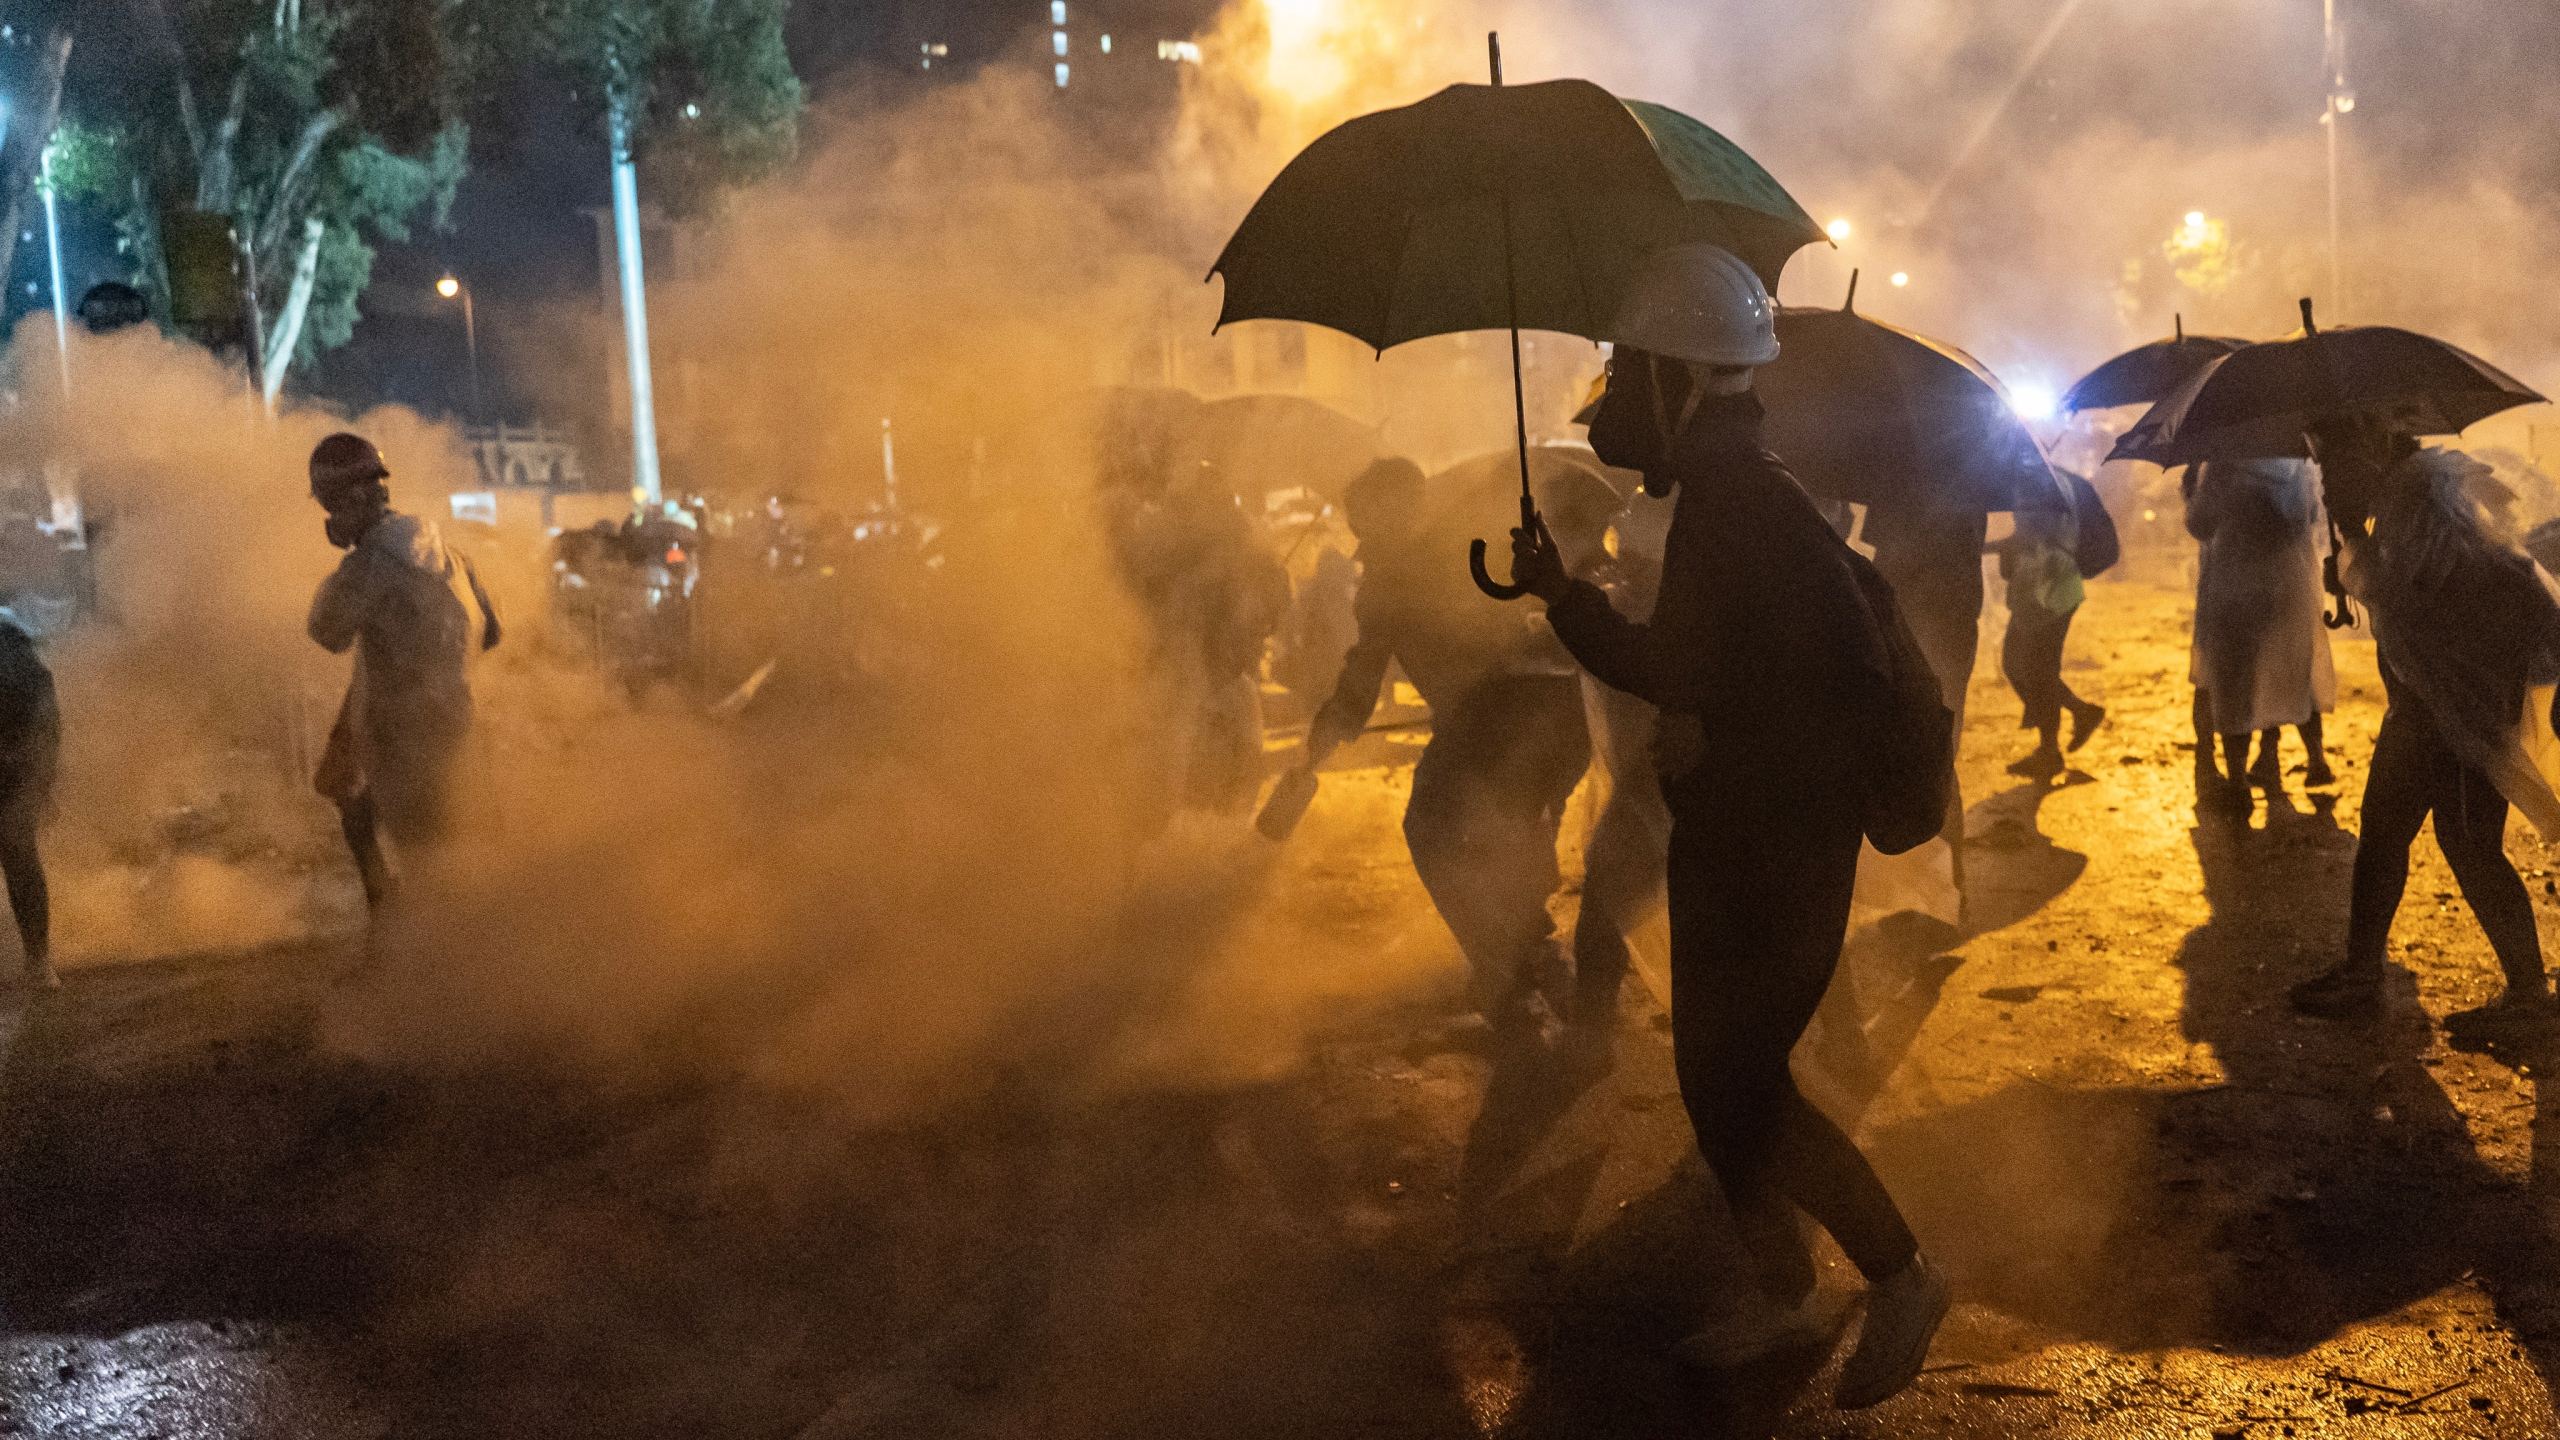 Protesters clash with police as police fire teargas at them at The Hong Kong Polytechnic University on Nov. 18, 2019, in Hong Kong, China. (Credit: Anthony Kwan/Getty Images)